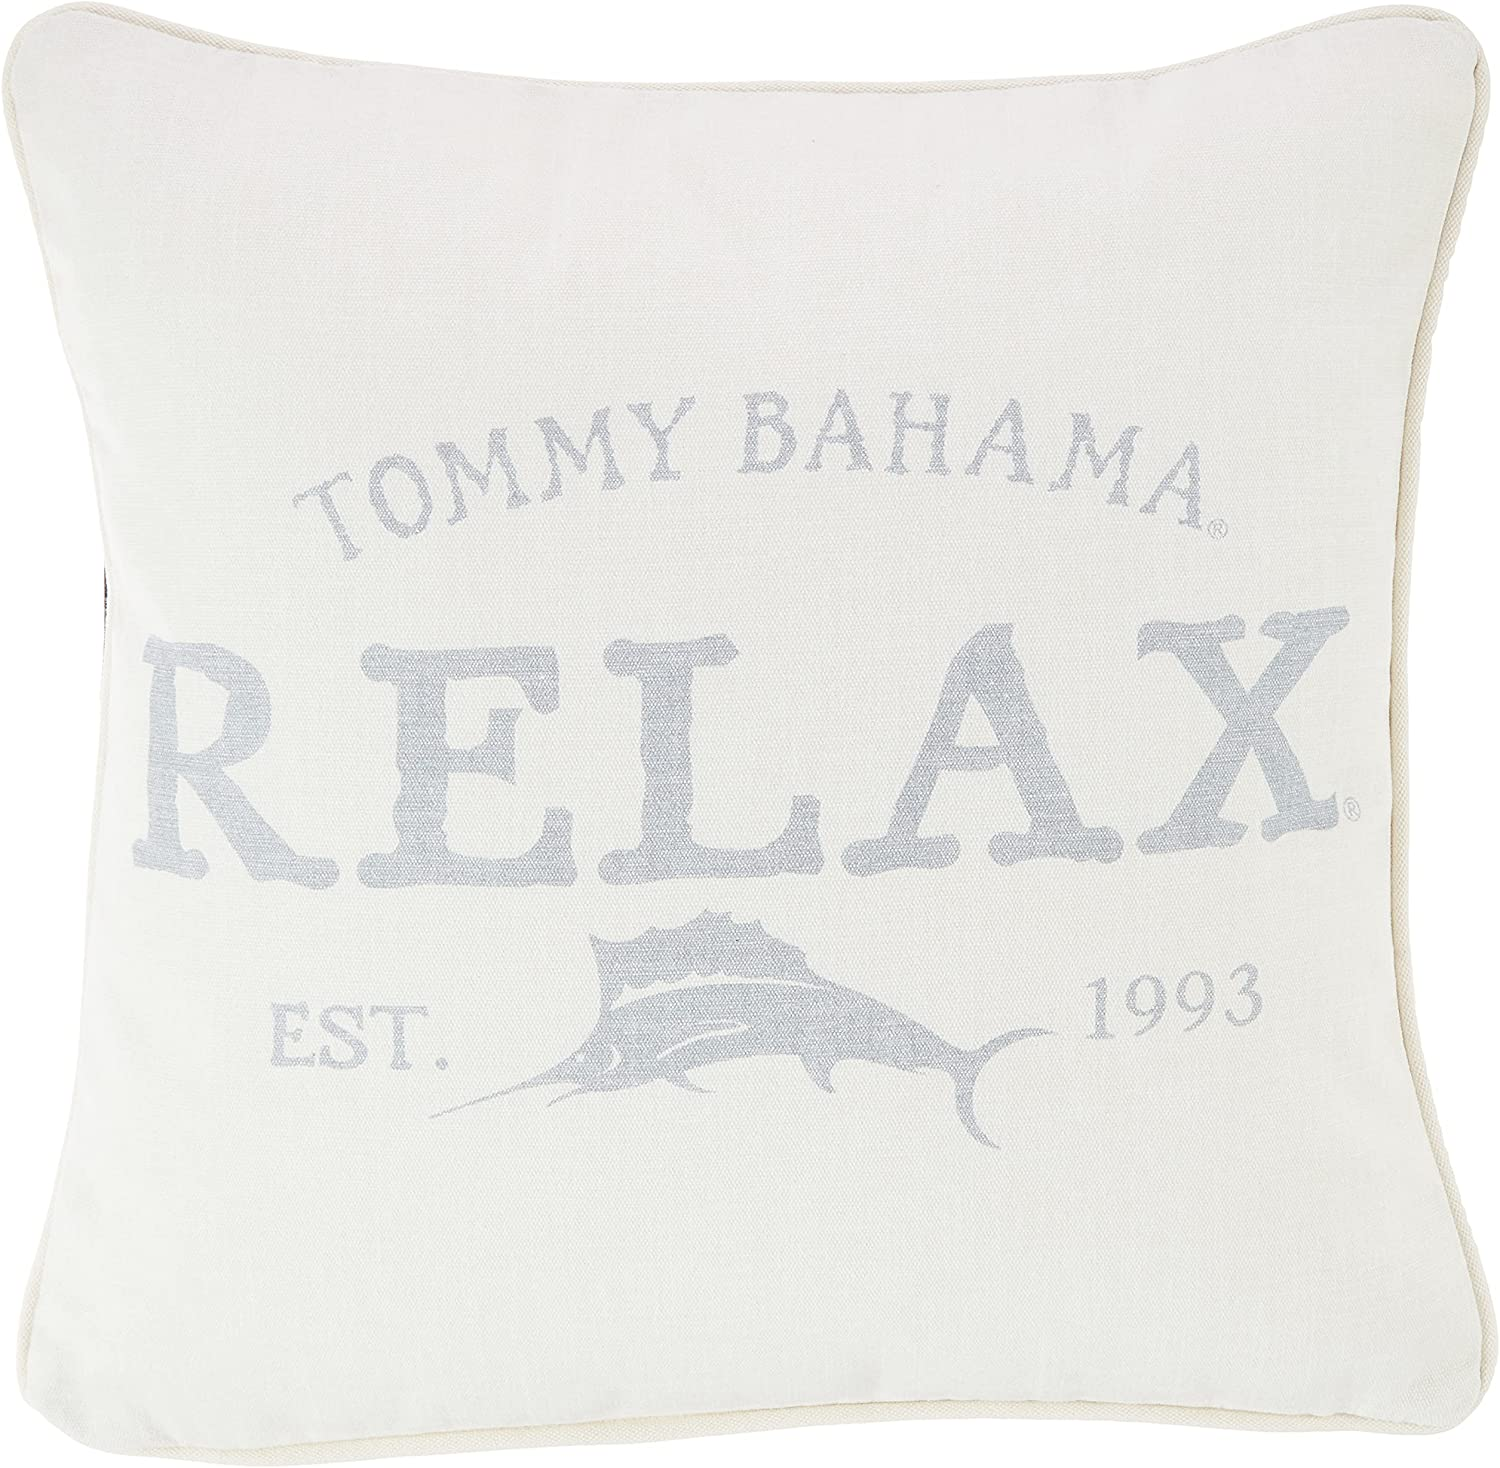 Tommy Seattle Mall Bahama Relax Throw 18x18 Pillow New Shipping Free Shipping Grey